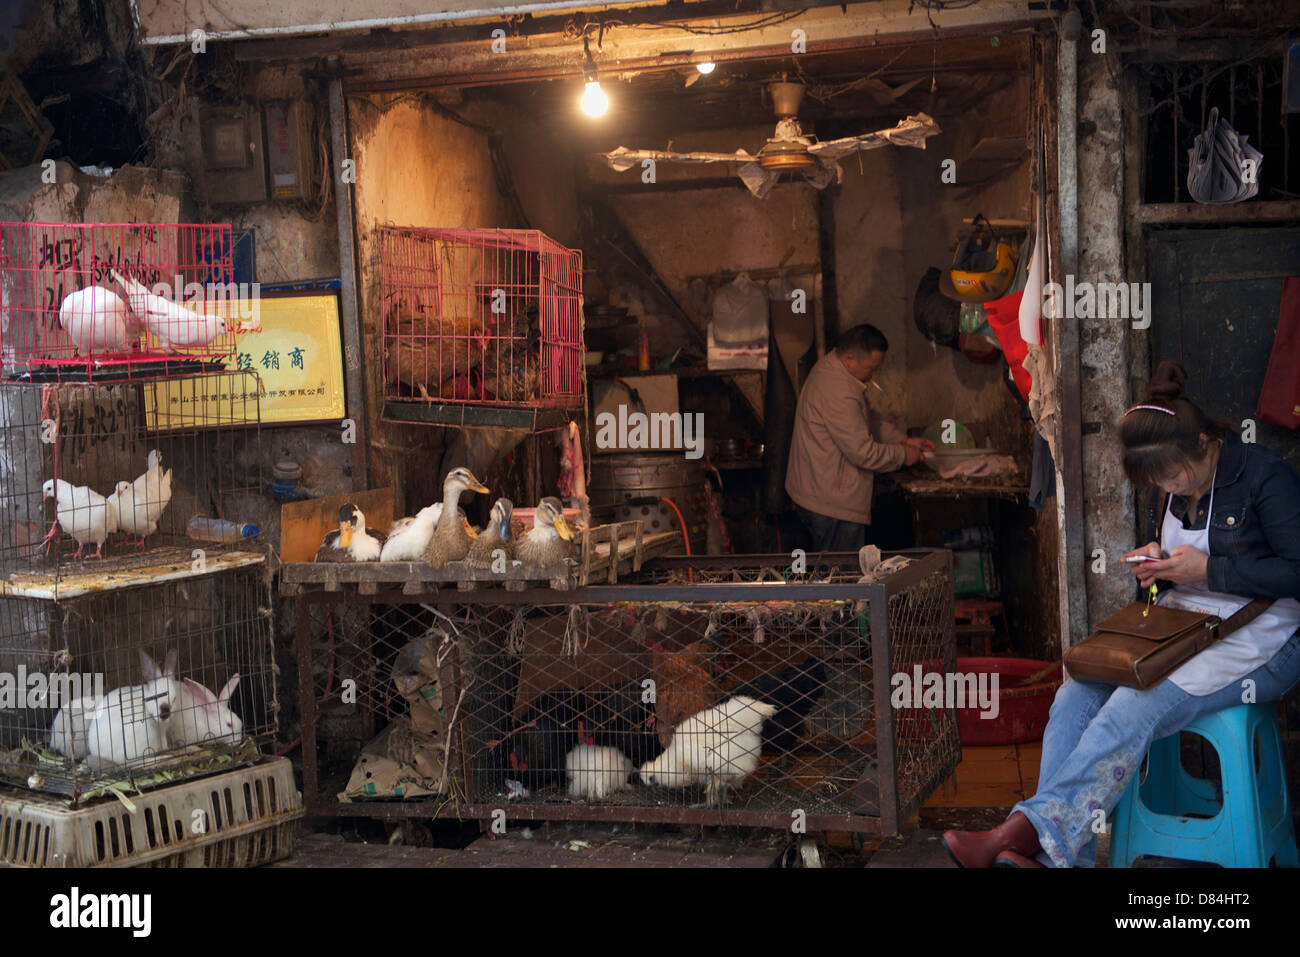 Live poultry are on sale in Chongqing, China. 09-May-2013 - Stock Image